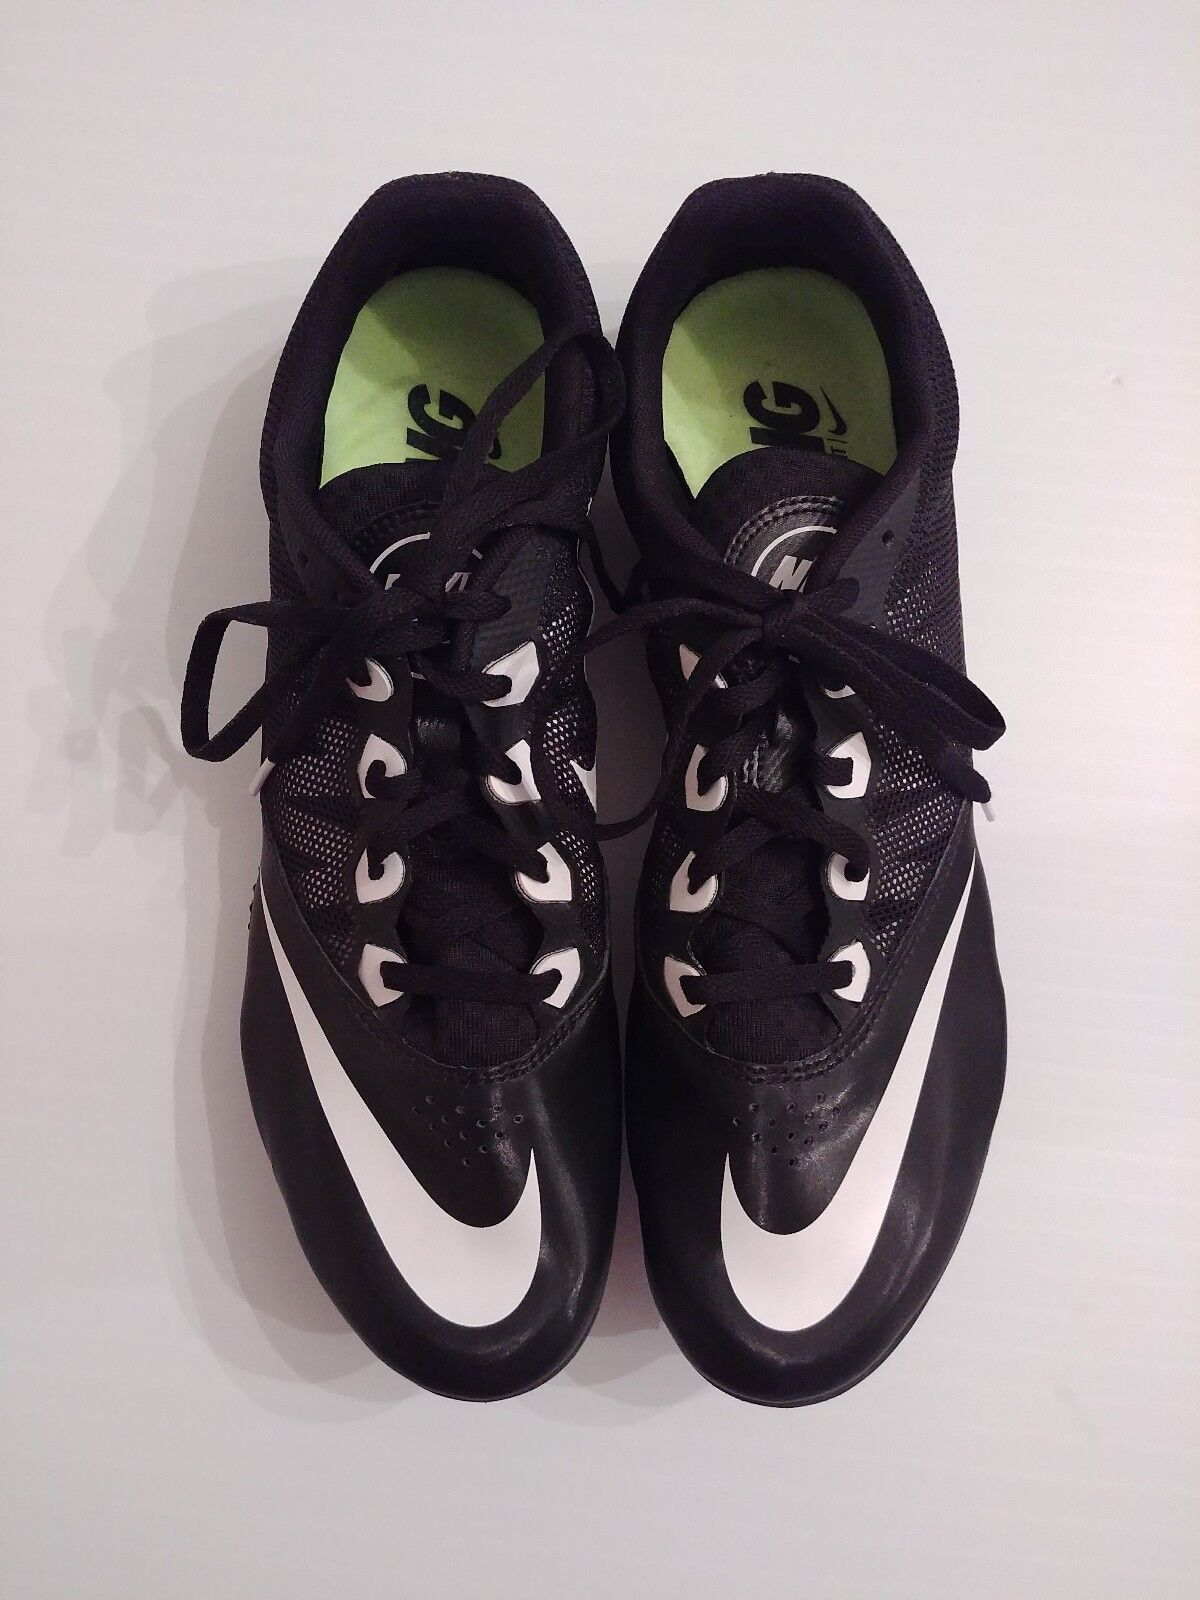 Nike Zoom Rival S Shoes Track Spikes 616313-001 Run Racing Sprint Sz 12 New Seasonal price cuts, discount benefits